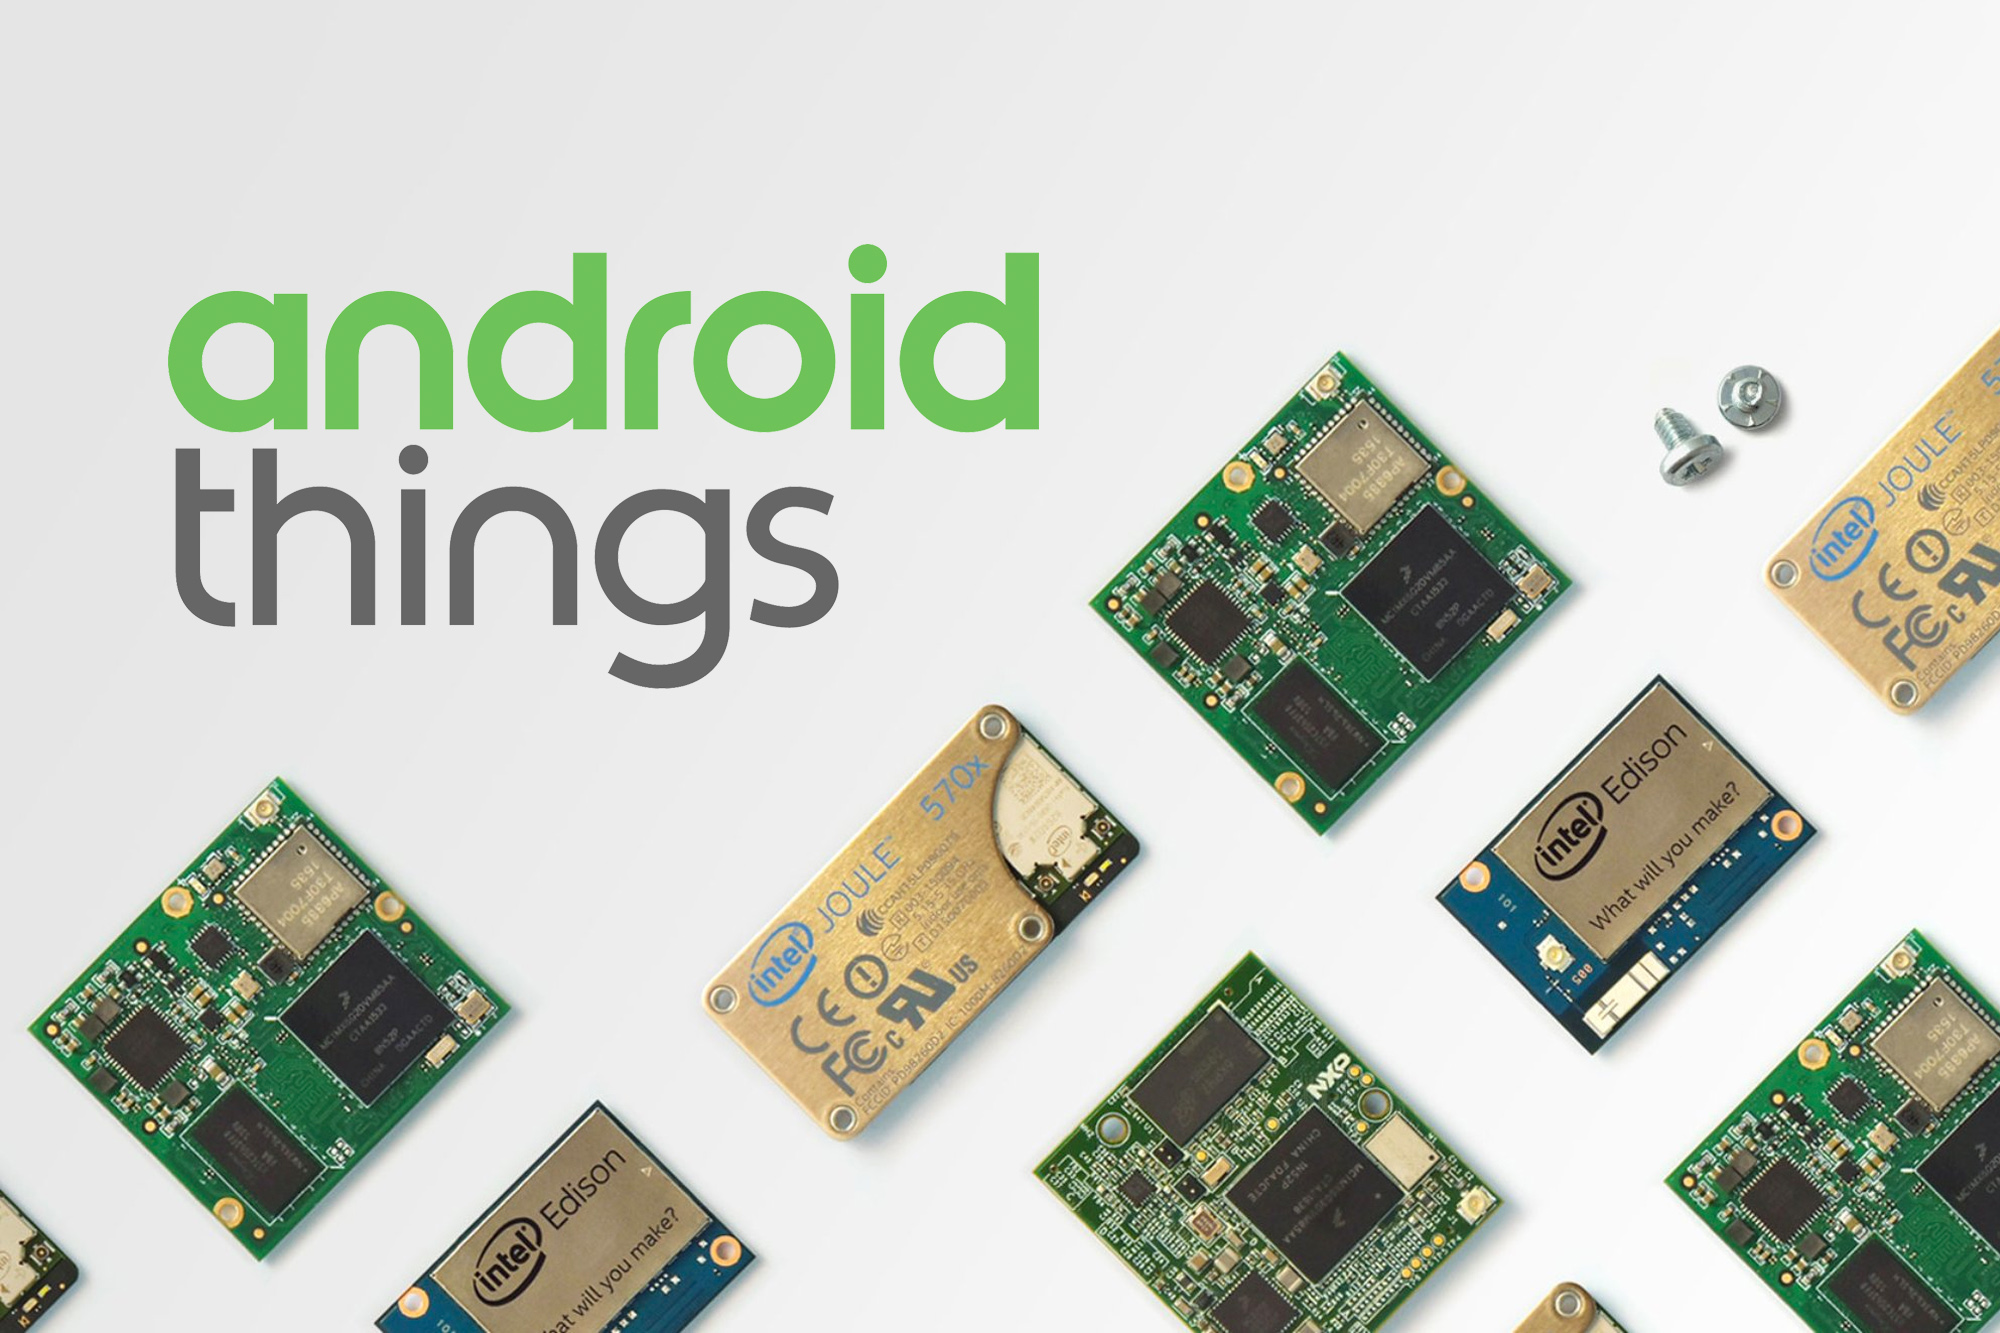 Getting started with Android Things